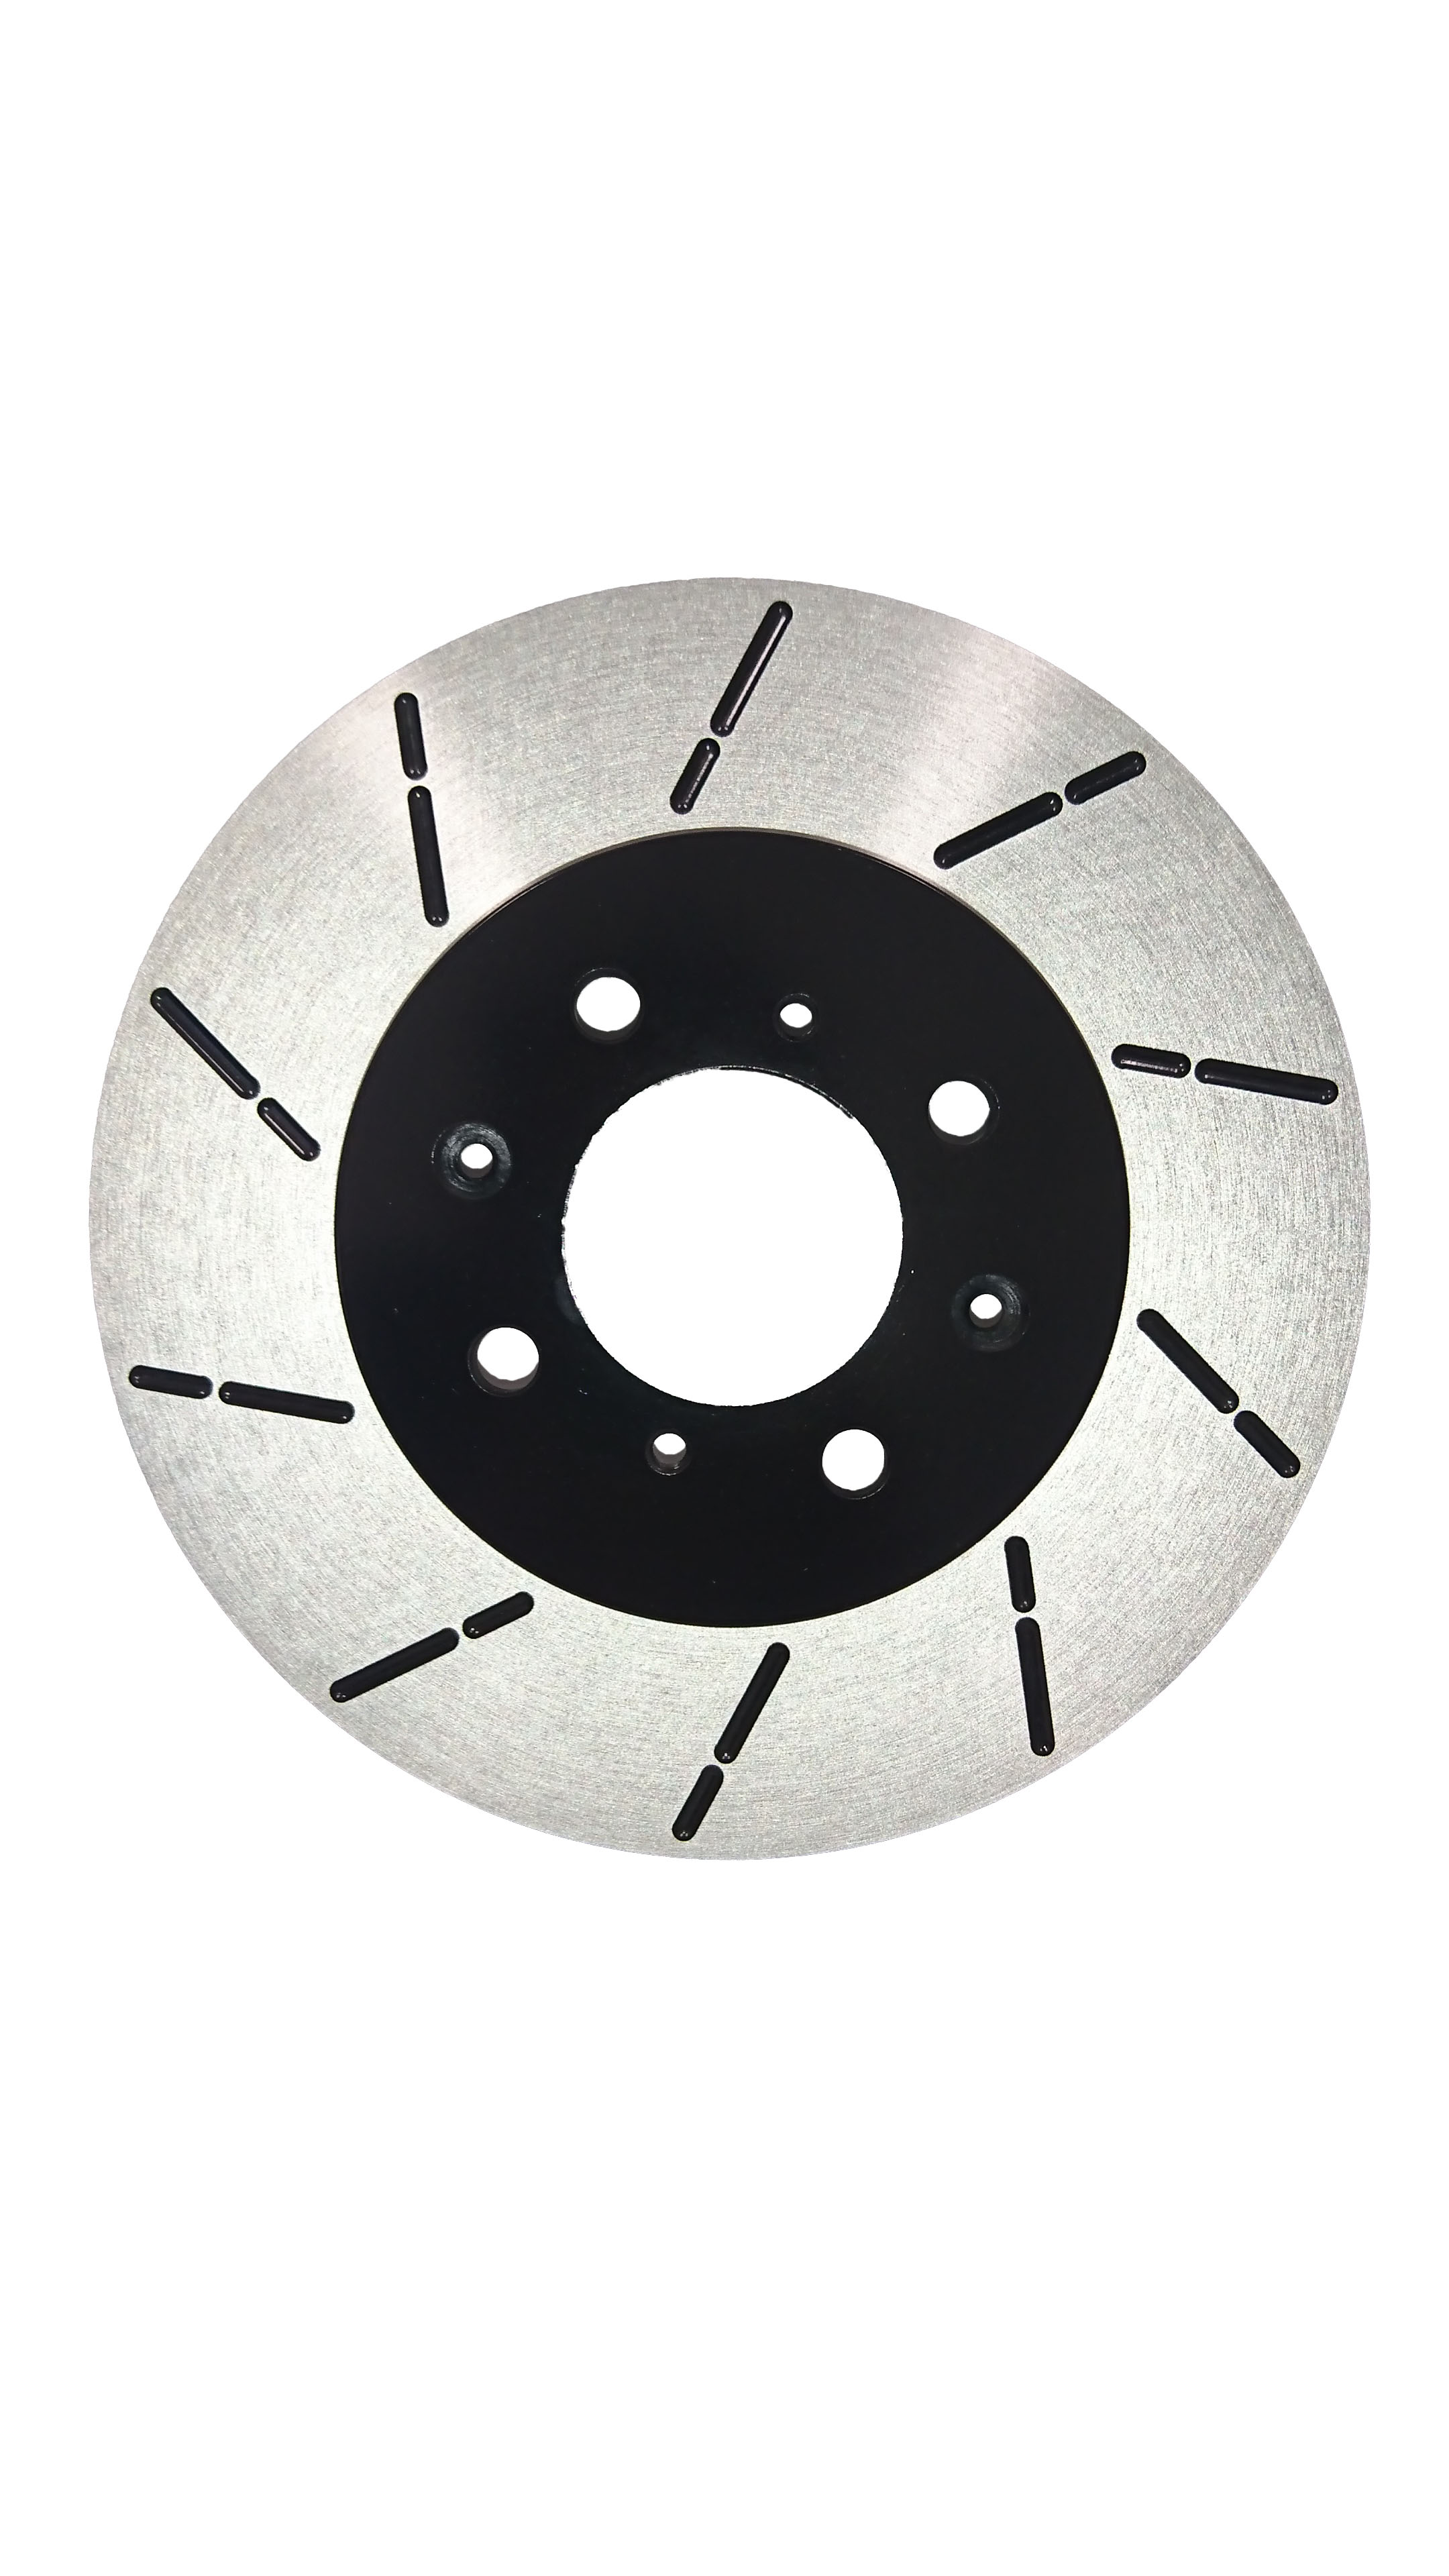 03 Saab 9-5 w//308mm Front Rotor Dia OE Replacement Rotors w//Ceramic Pads F